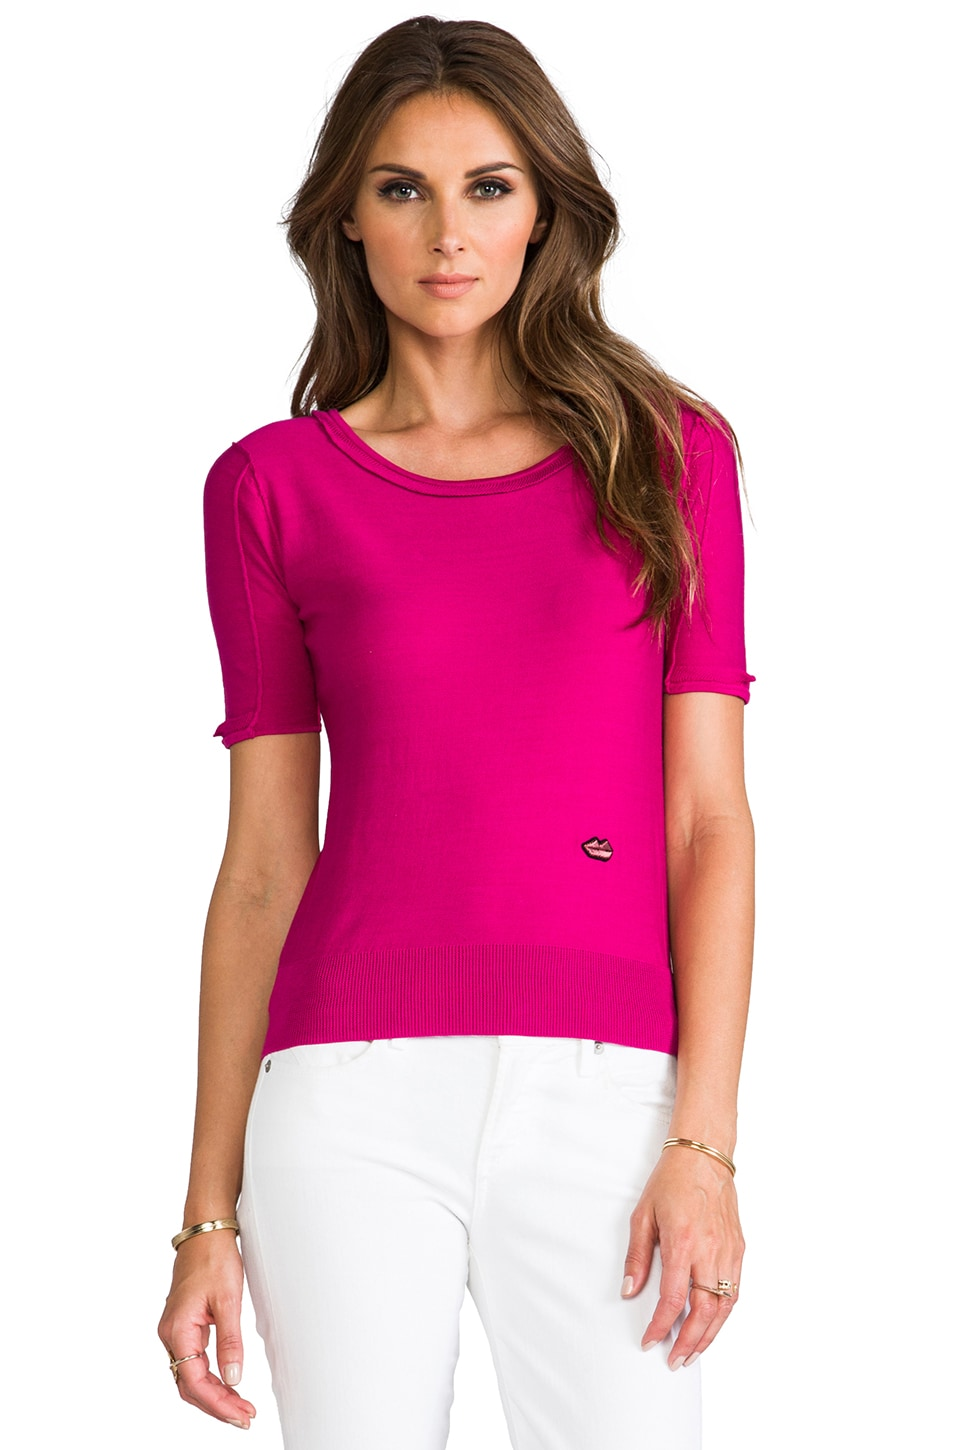 SONIA by Sonia Rykiel Short Sleeve Sweater in Peony